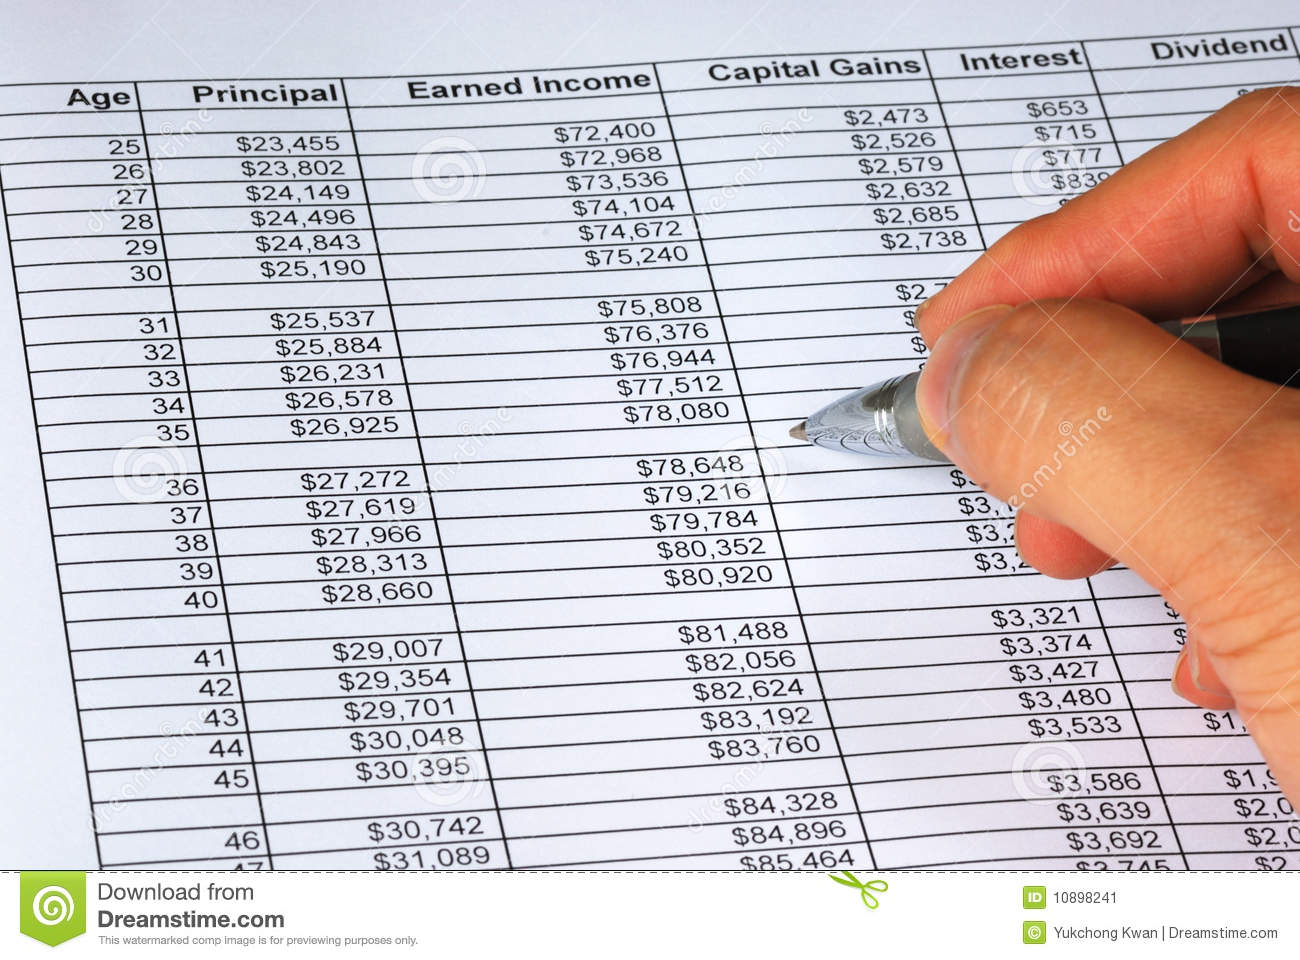 Projecting the income on a spreadsheet